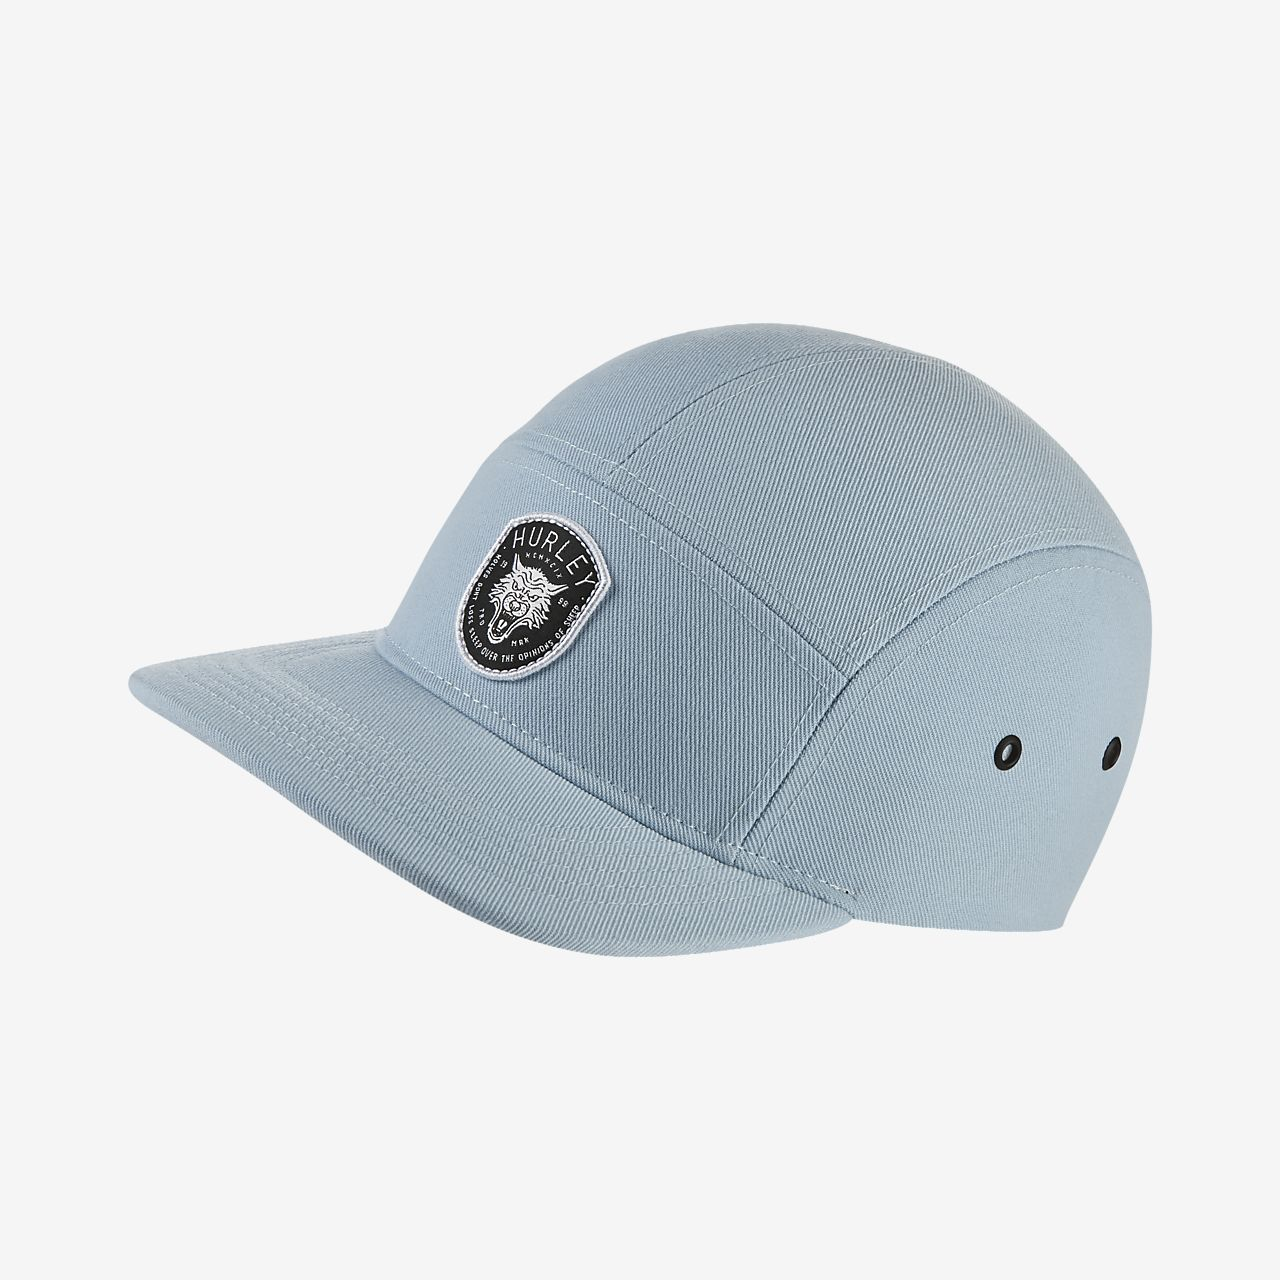 ... Hurley Coastal Wolf Dri-FIT Unisex Adjustable Hat